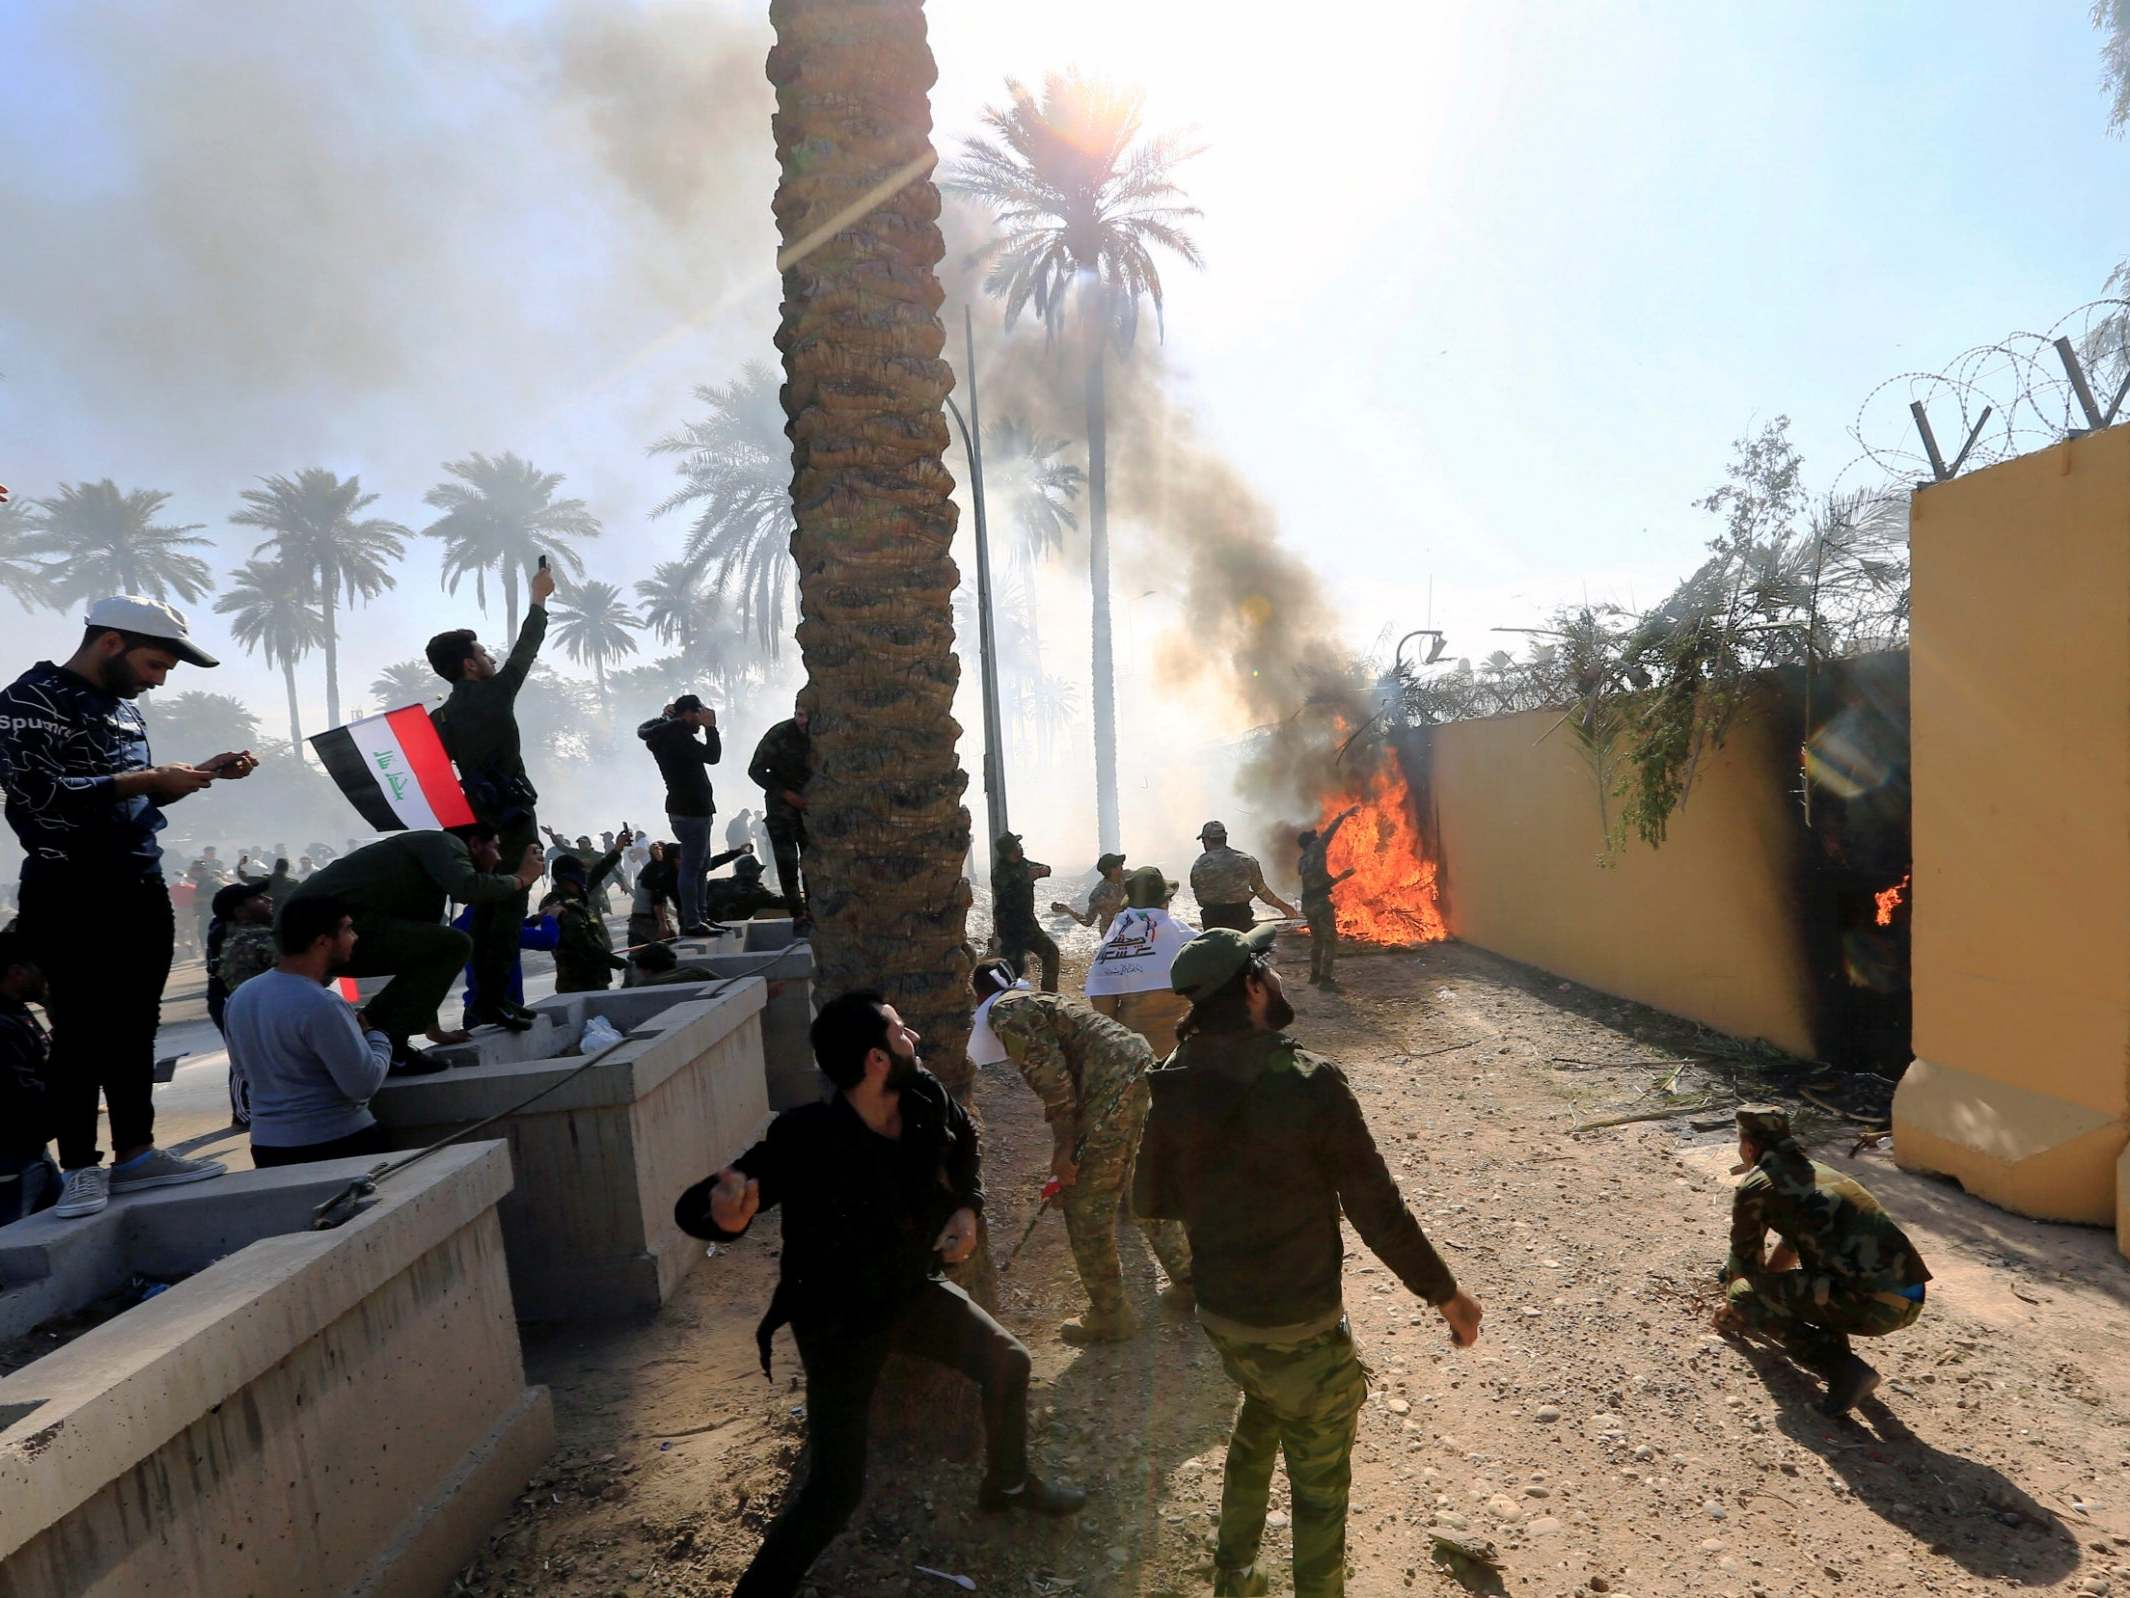 Iraqi protesters break down gate and storm US embassy as gunshots ring out